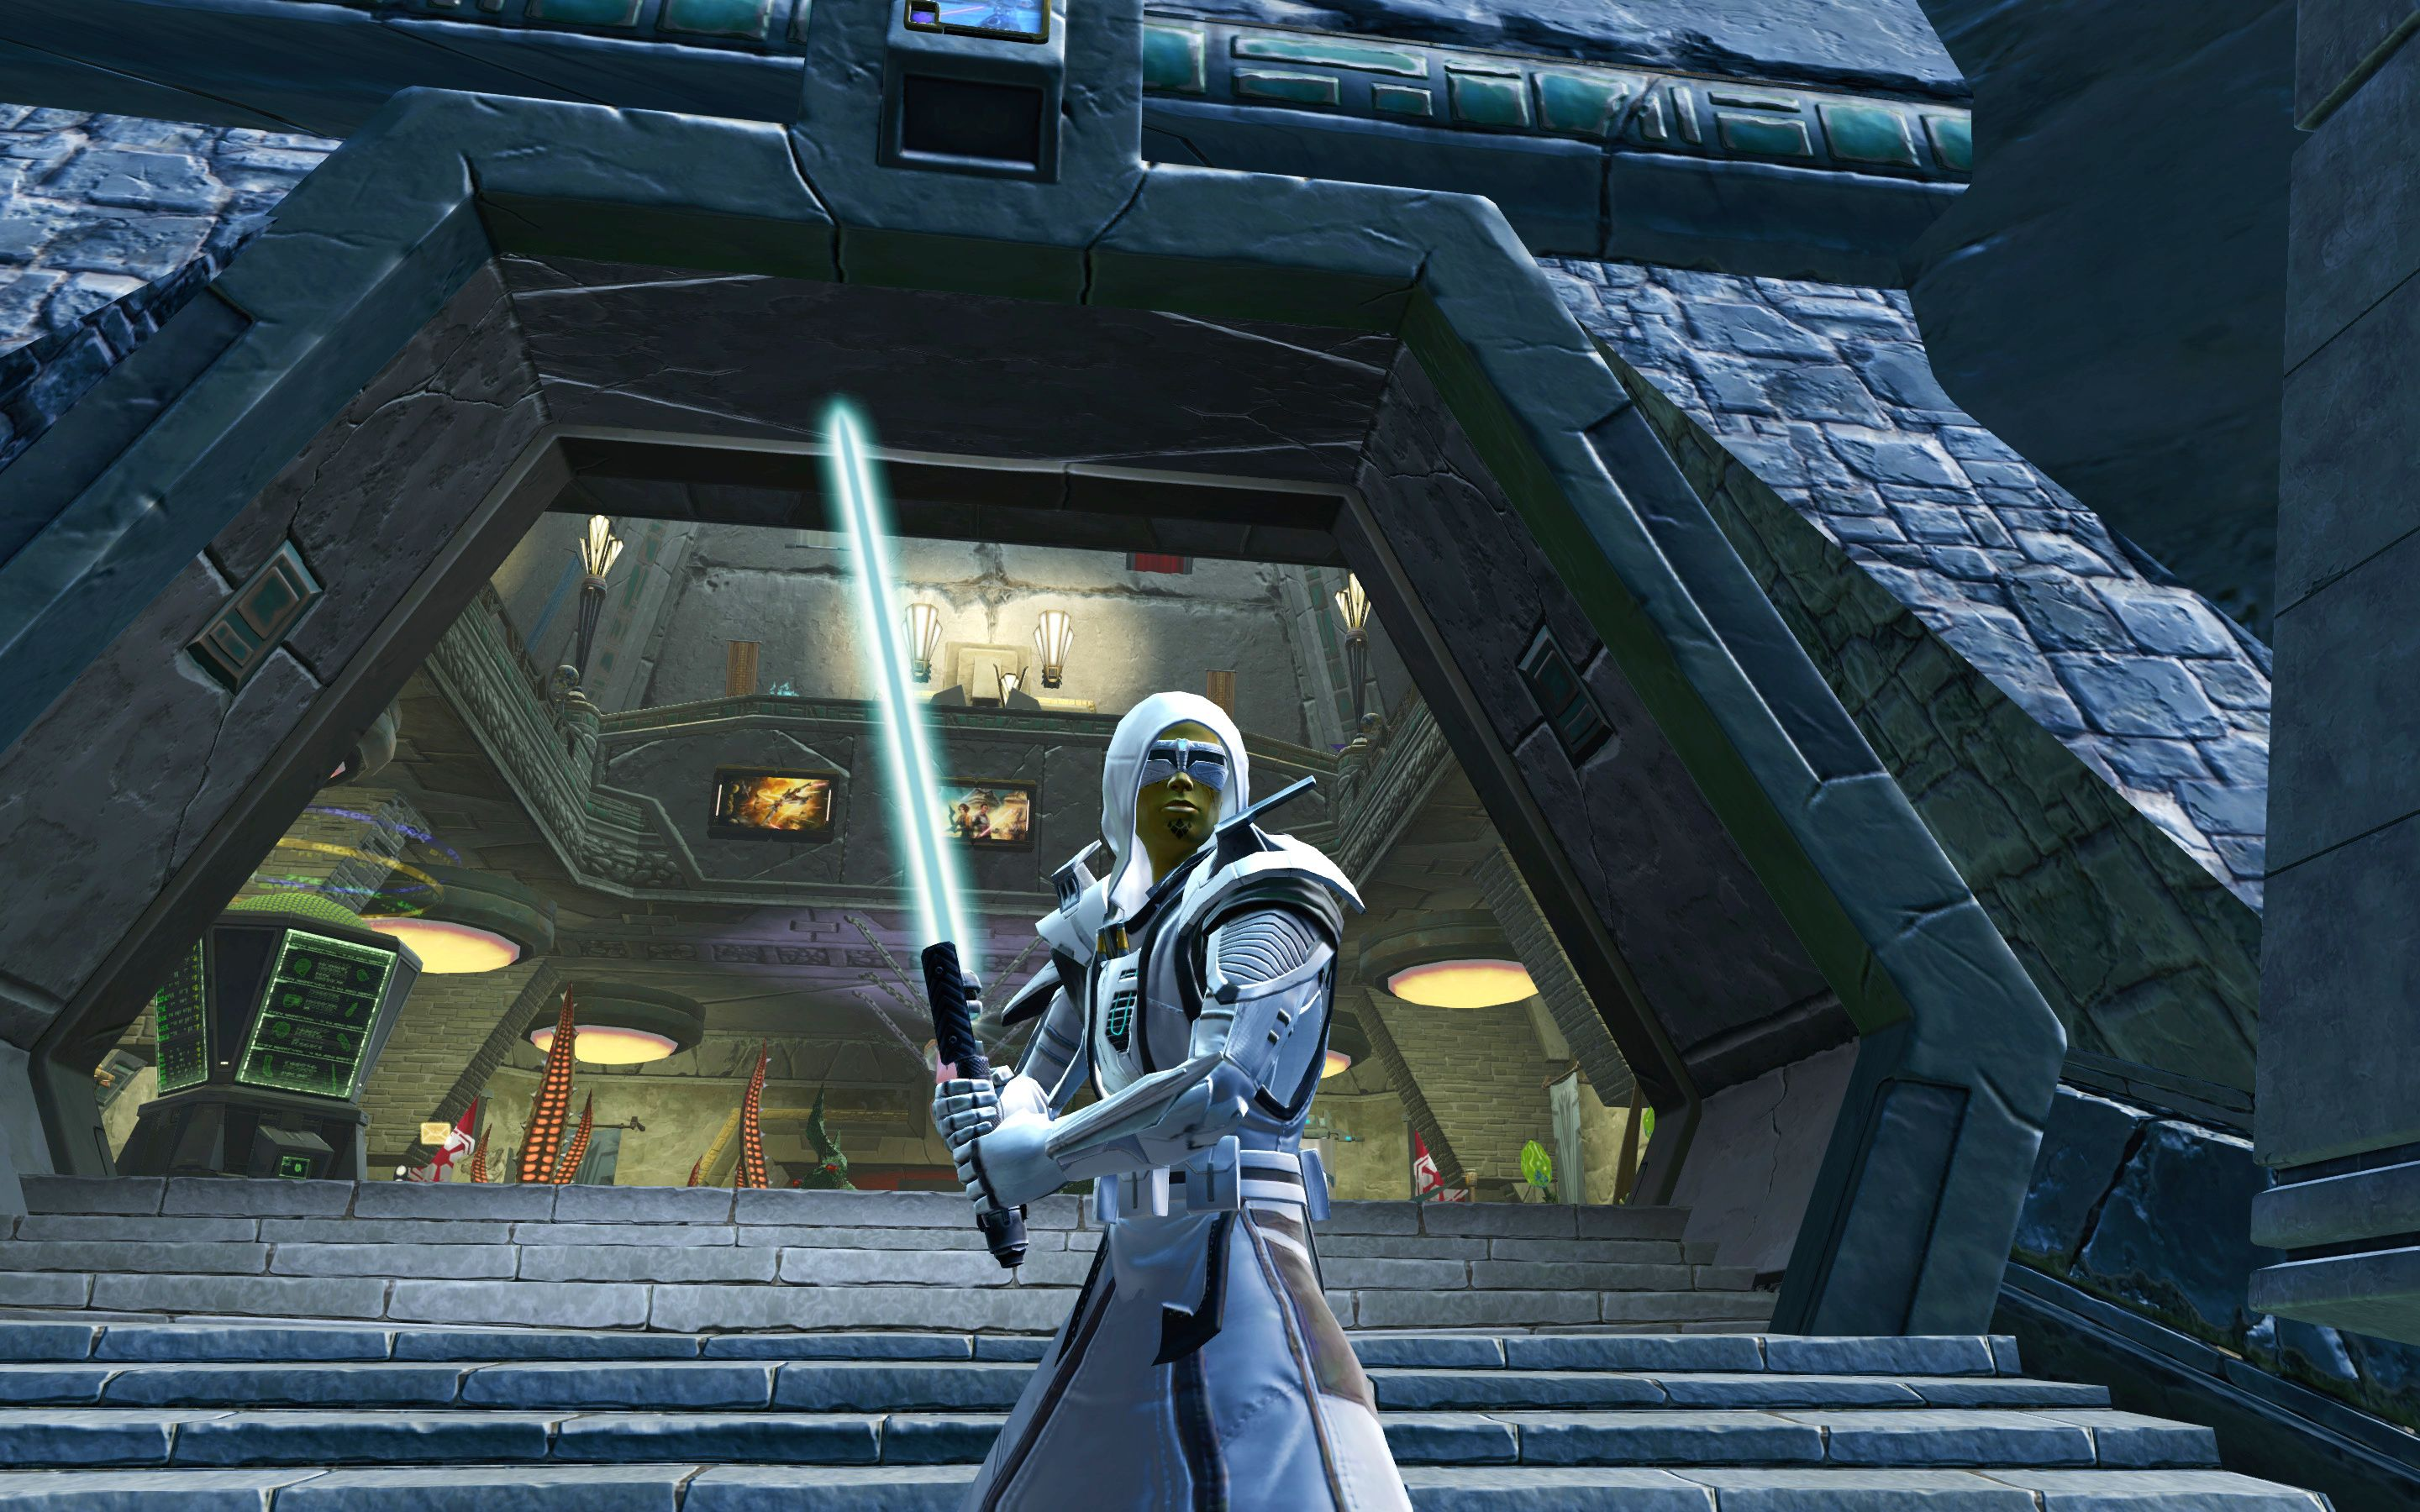 SWTOR Play Your Way - My Accessibility Hopes for Spoils of War